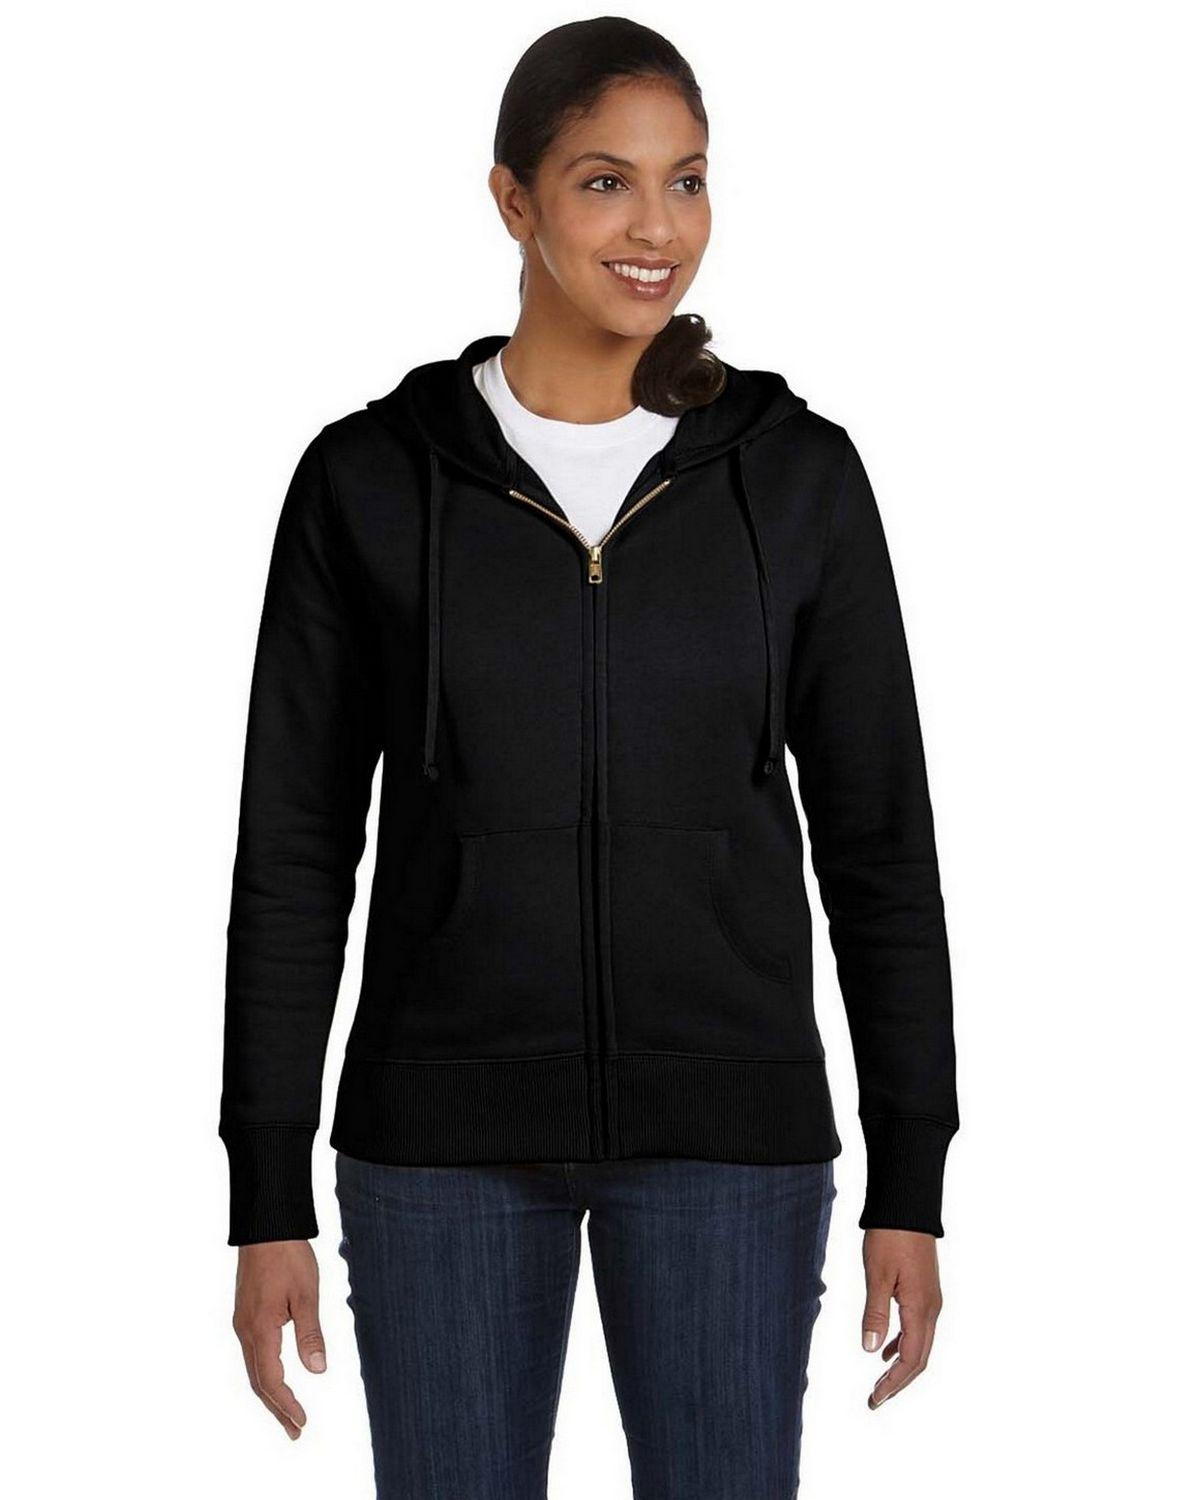 econscious EC4501 Ladies Hood Jacket - Polar Bear - M EC4501